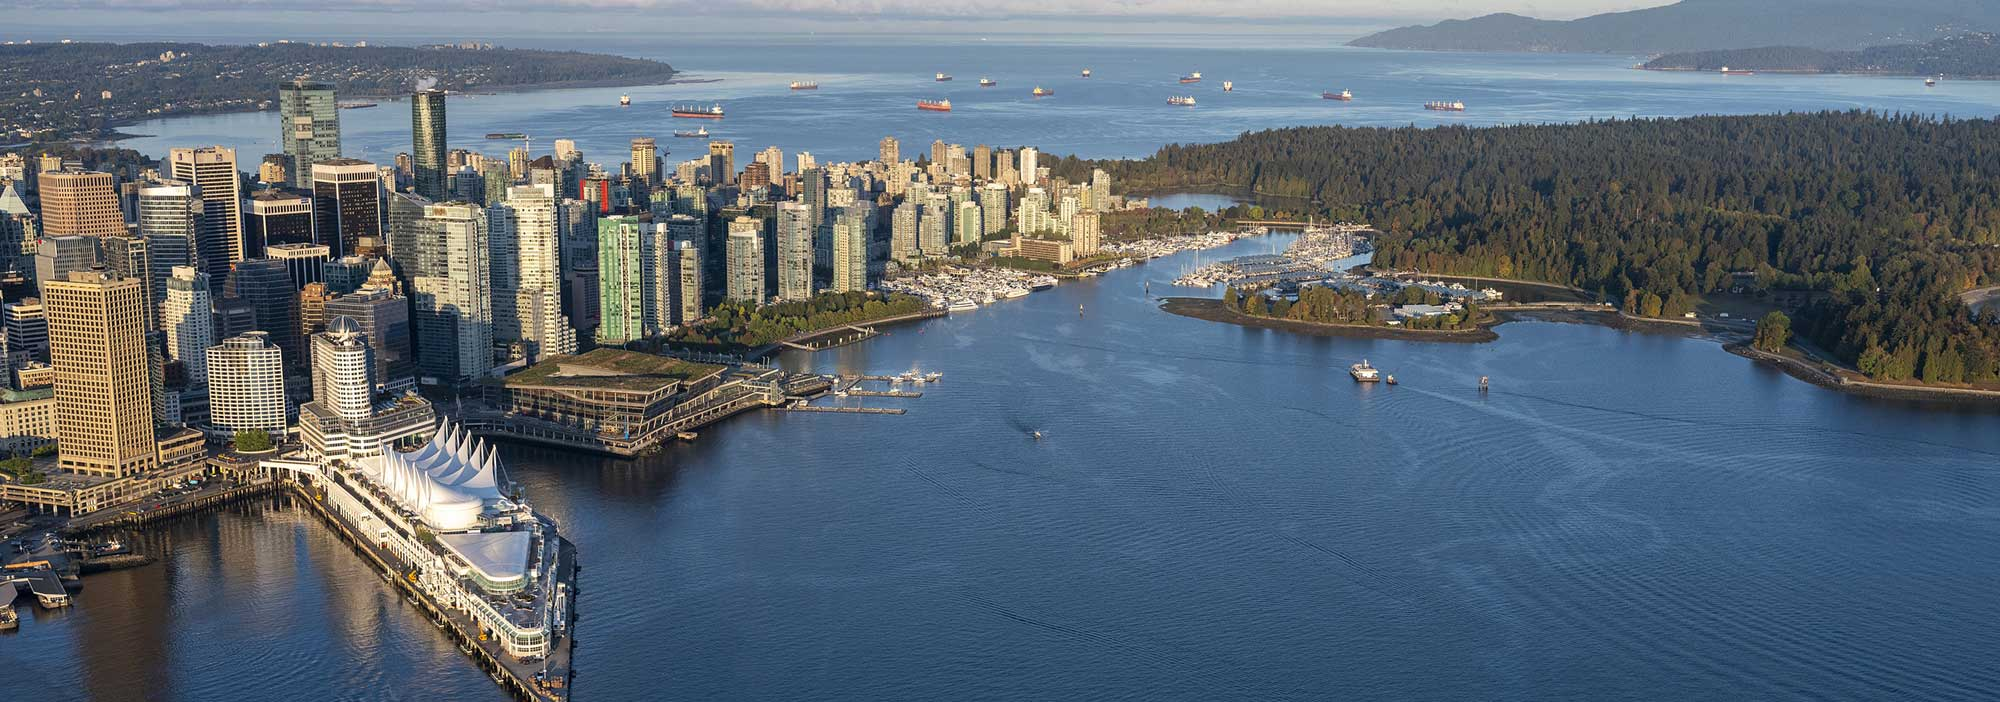 Vancouver Convention Centre aerial view, downtown Vancouver, Stanley Park